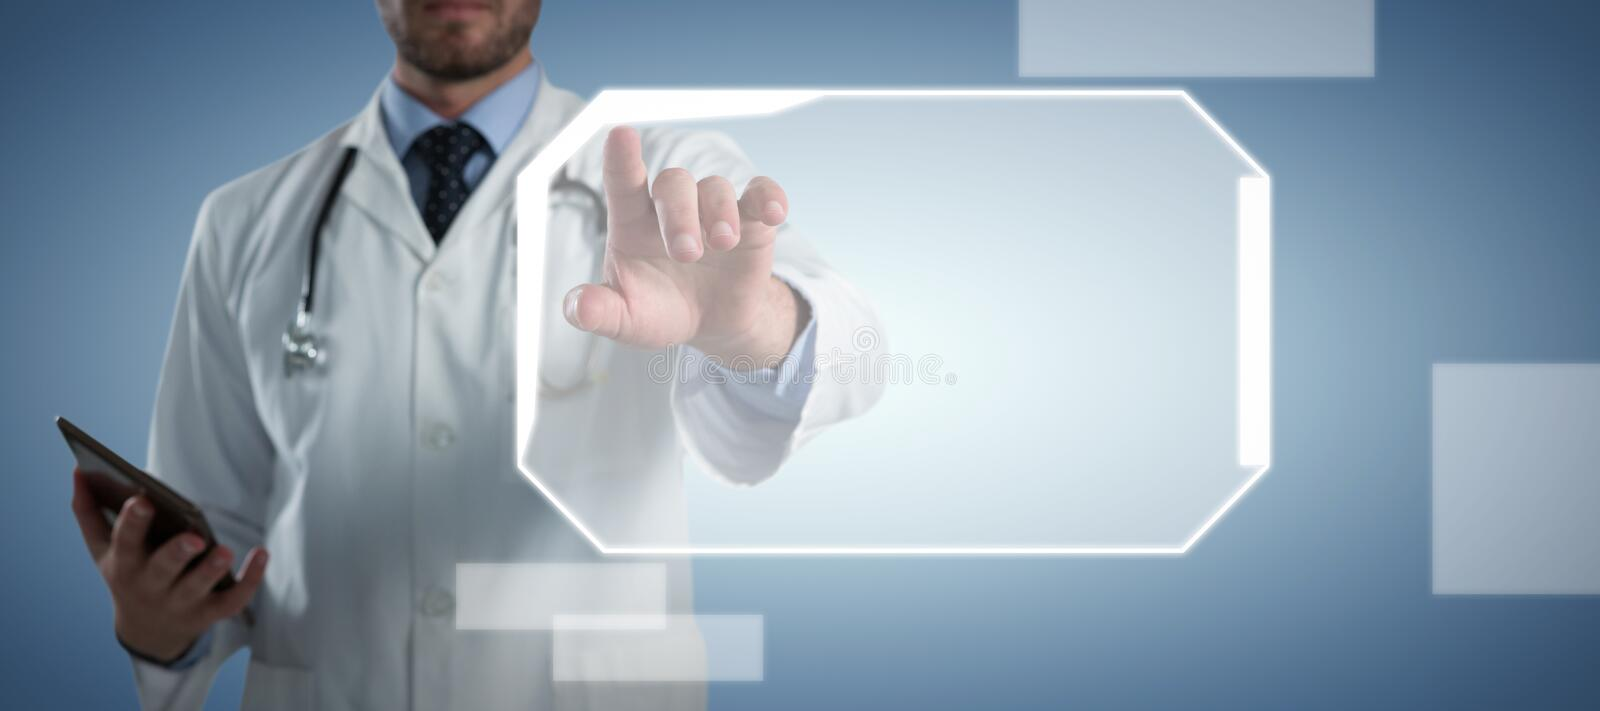 Male doctor using invisible screen against abstract blue background royalty free stock photography